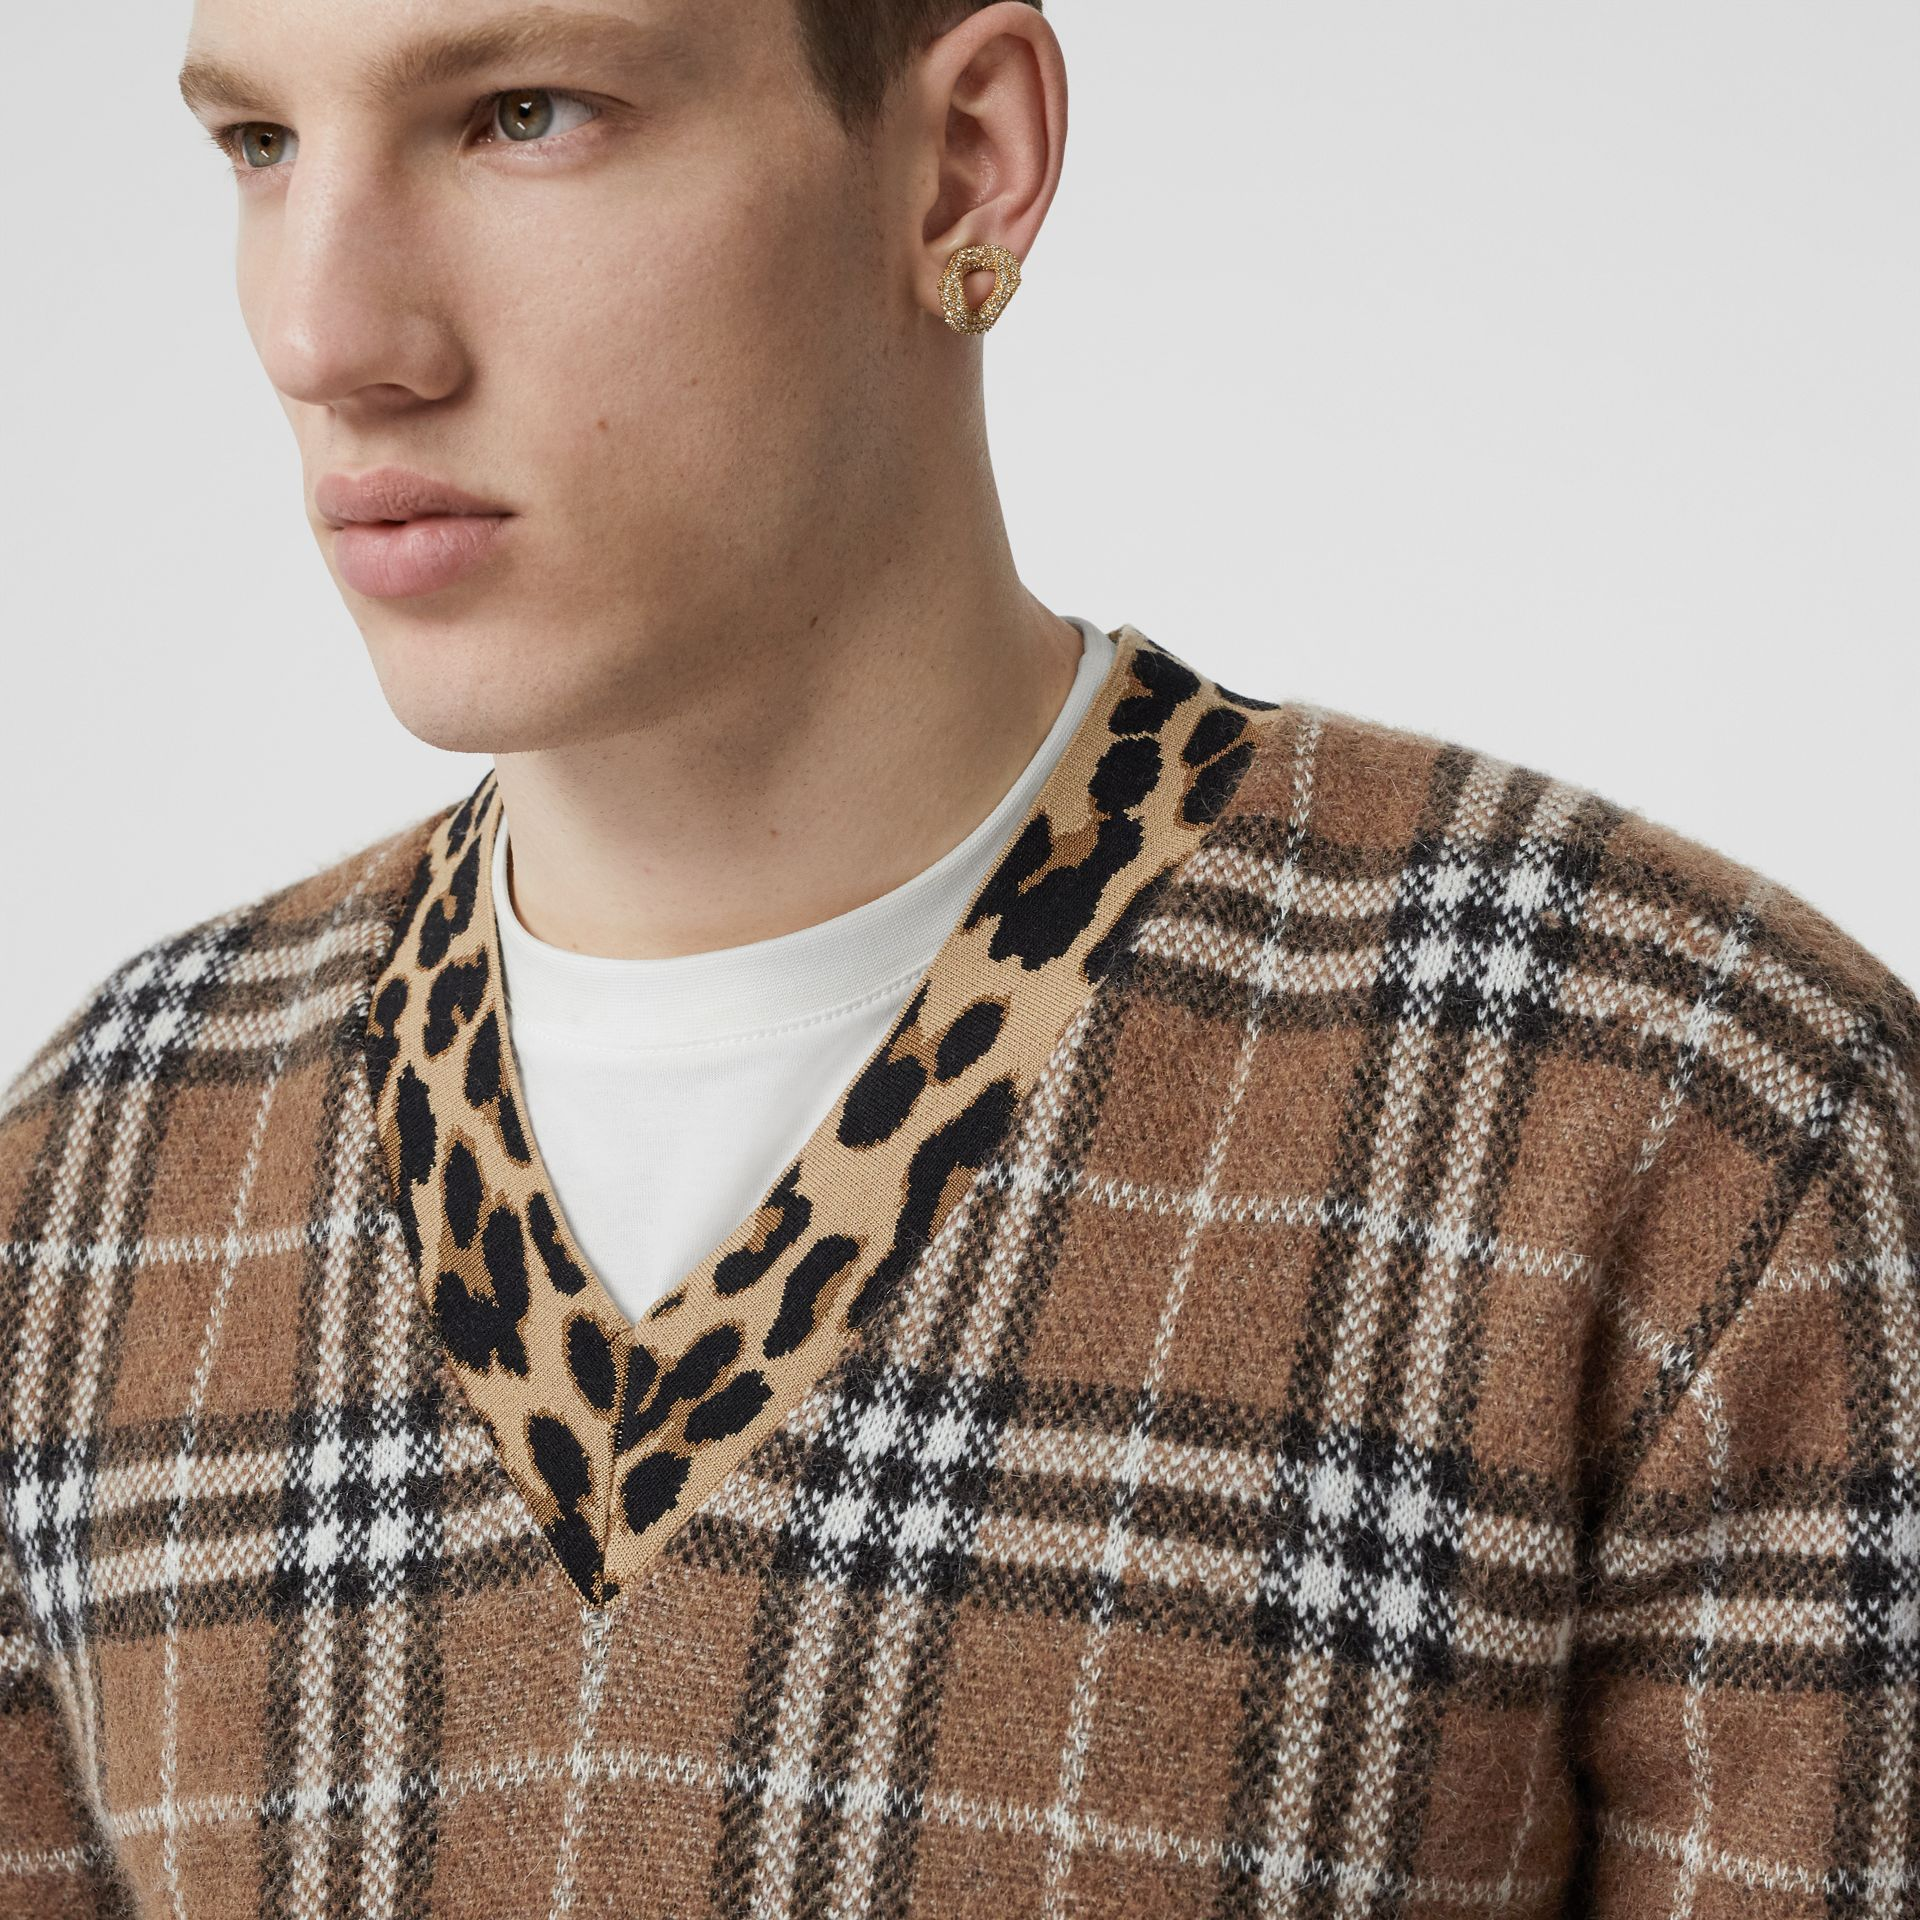 Leopard Detail Vintage Check Cashmere Blend Sweater in Warm Walnut - Men | Burberry - gallery image 4